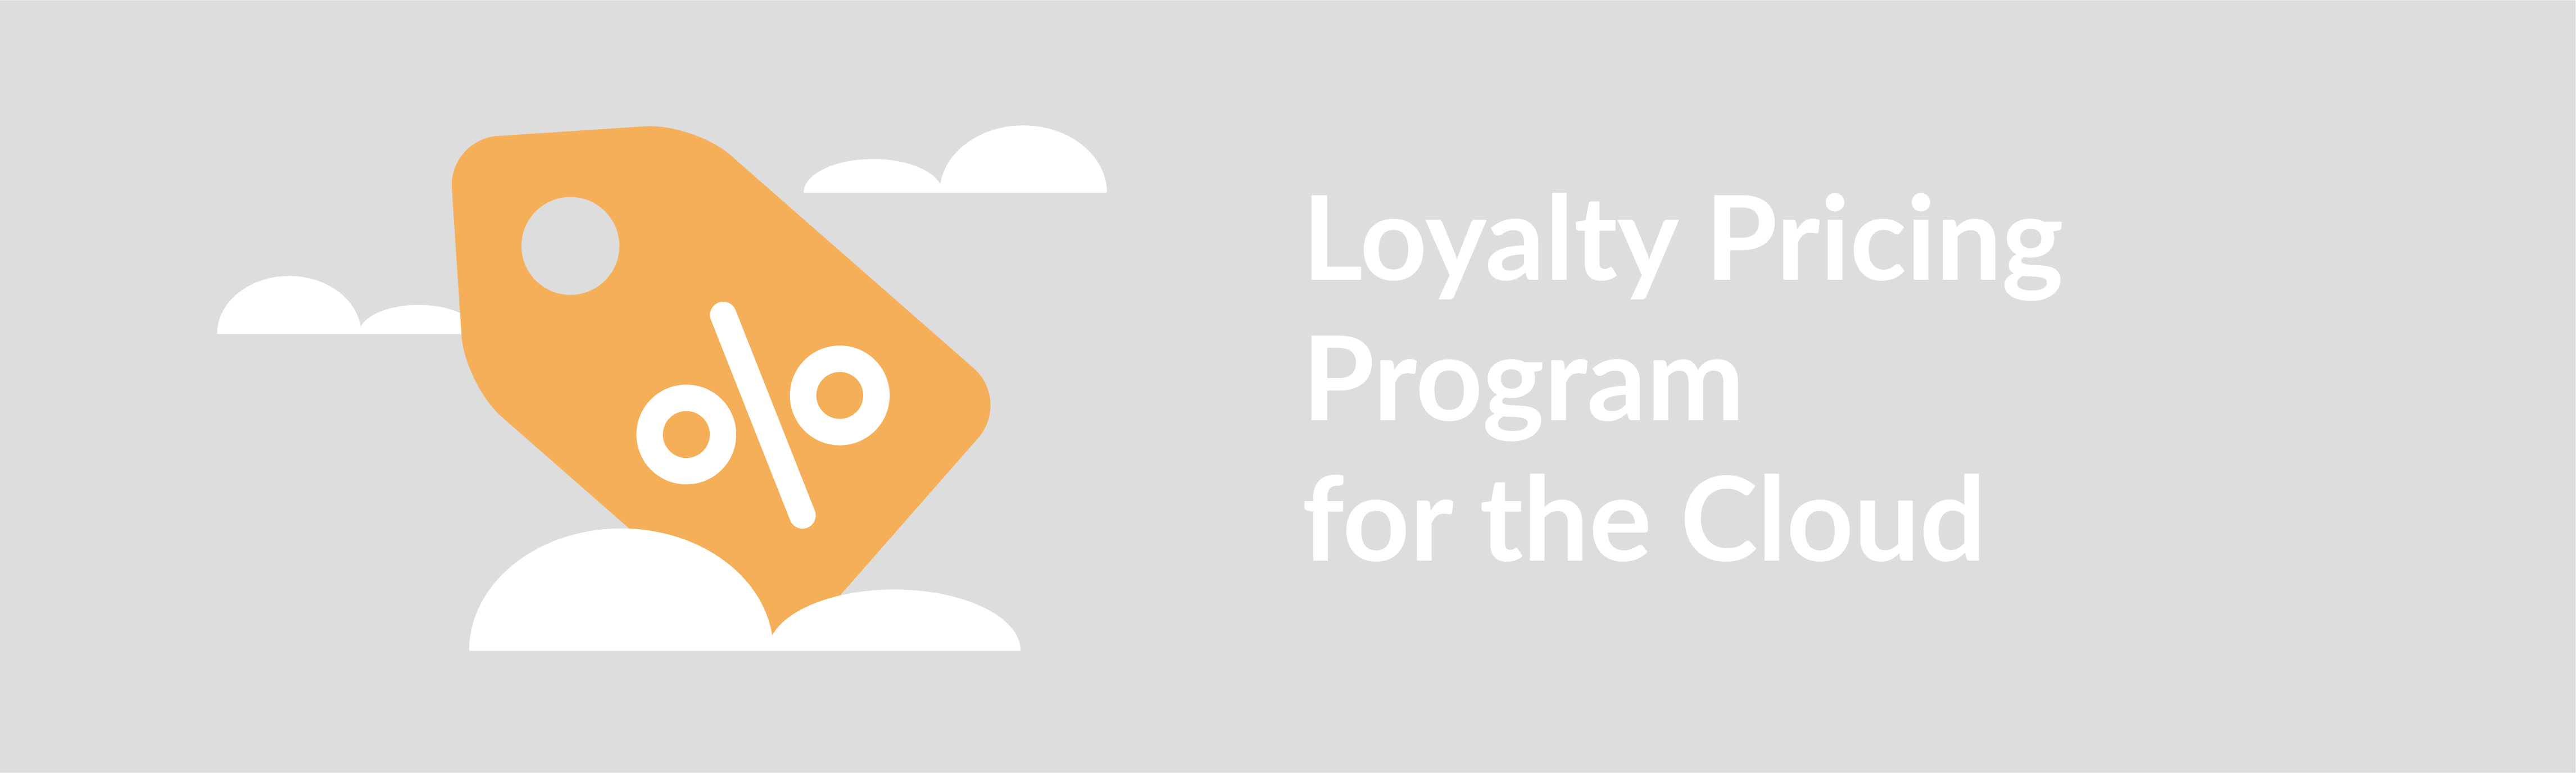 Loyalty Pricing Program for draw.io